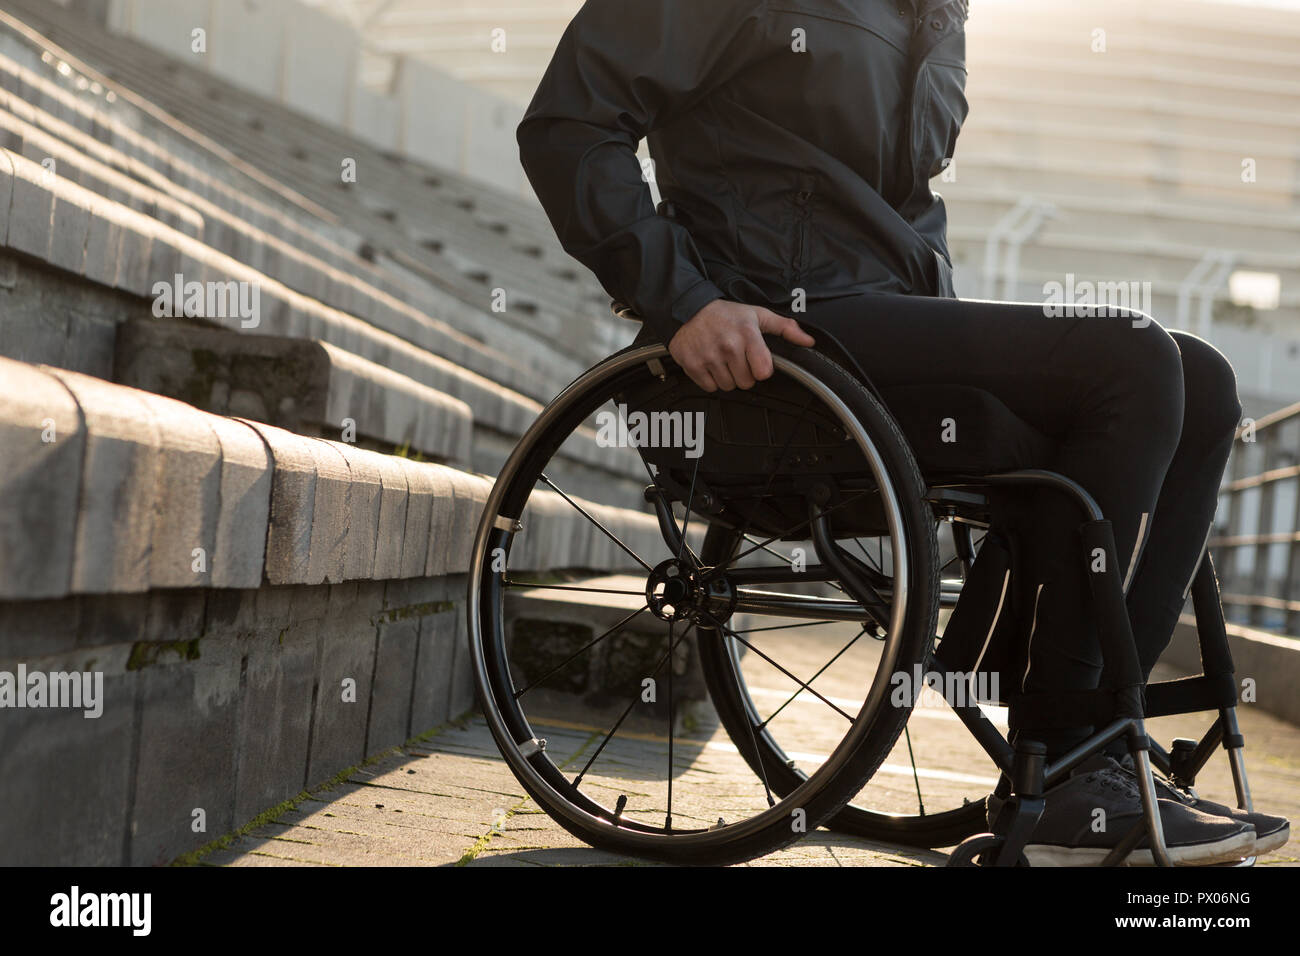 Disabled athletic moving with wheelchair at sports venue - Stock Image